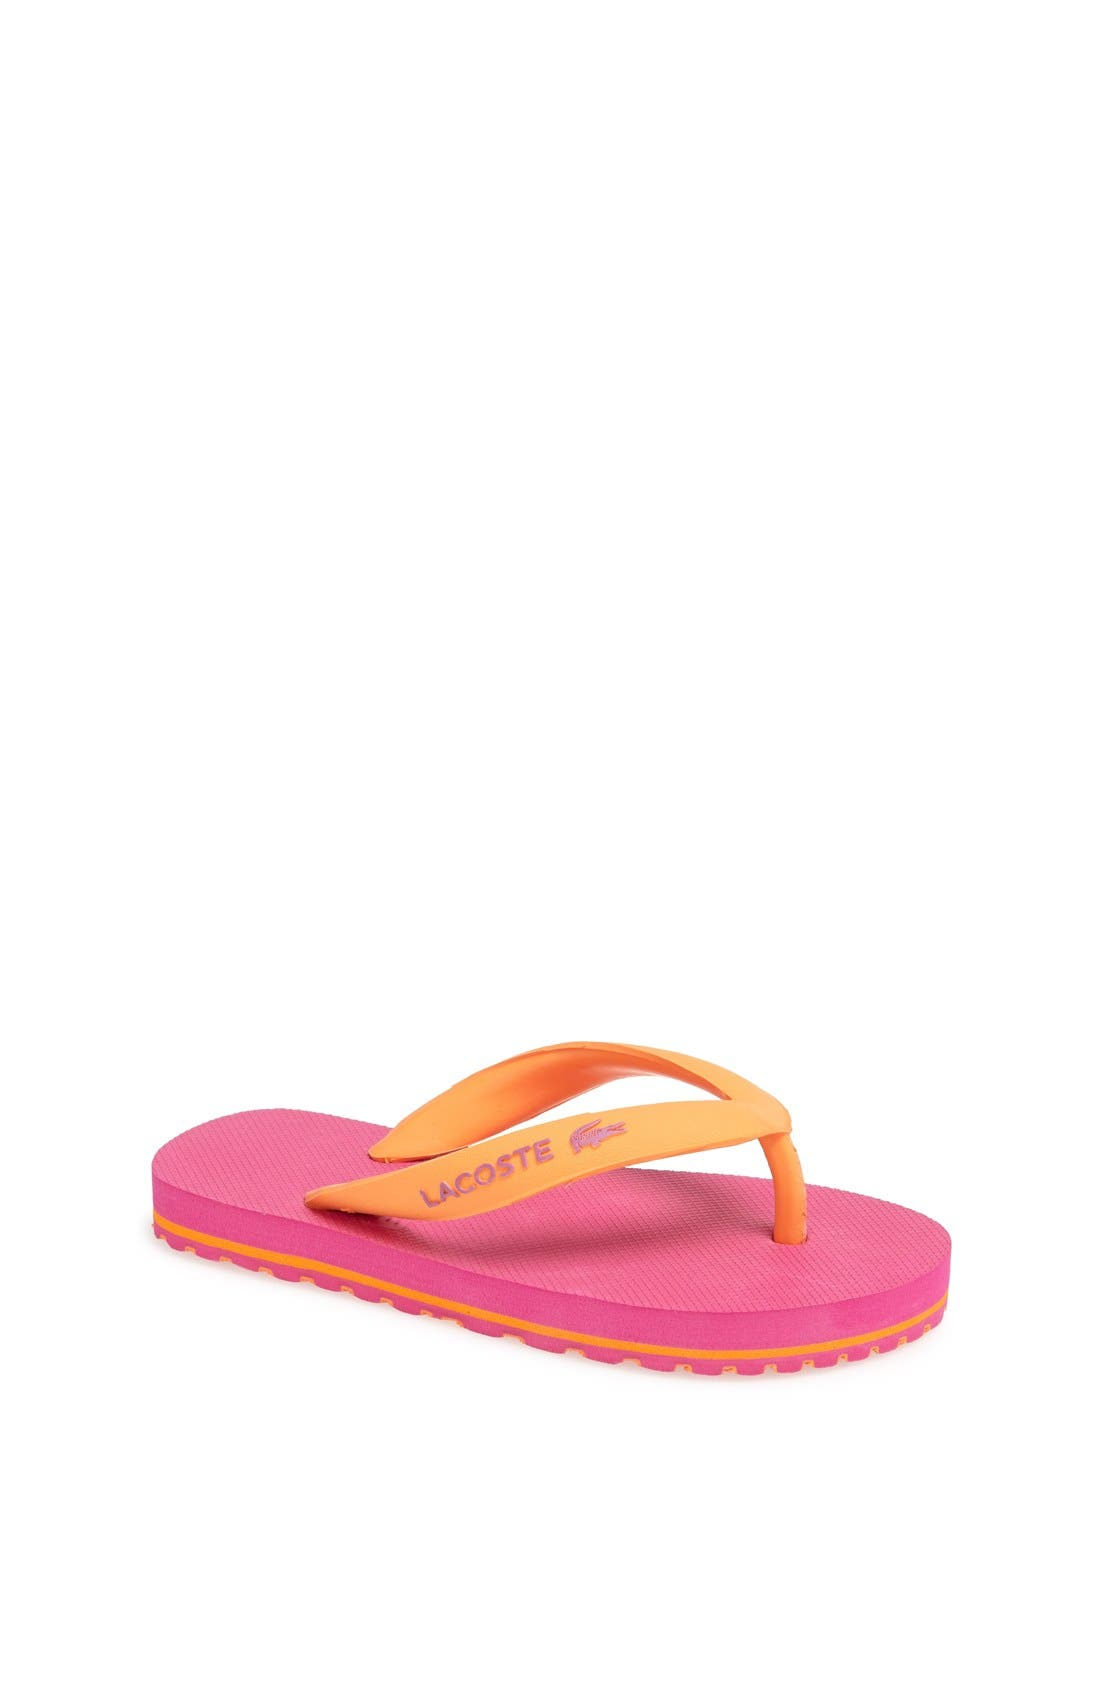 Main Image - Lacoste 'Nosara' Flip Flop (Toddler & Little Kid)